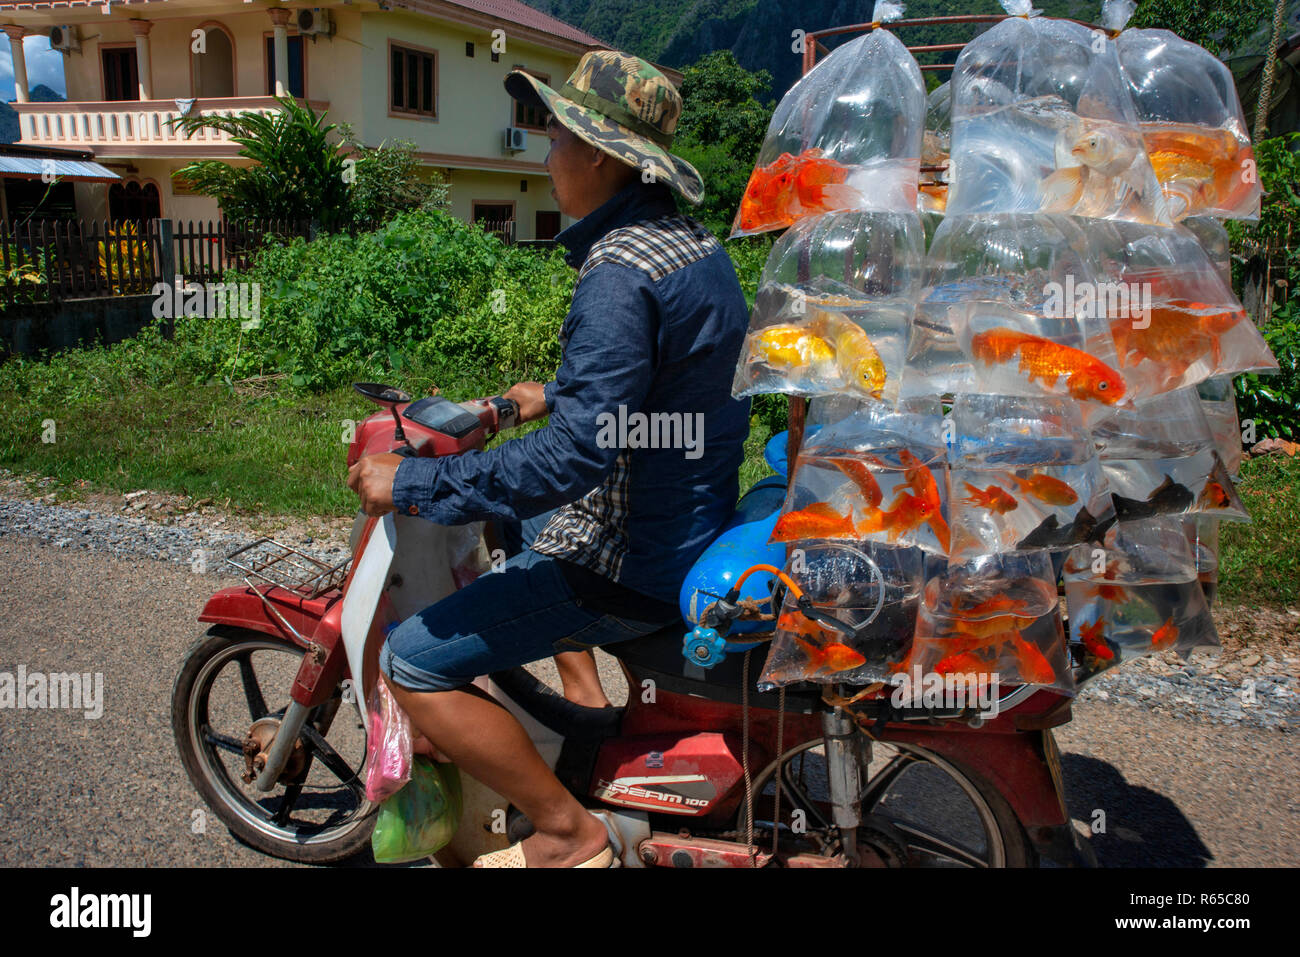 A man with a motorcycle transports fish for sale. Vang Vieng village, Laos - Stock Image